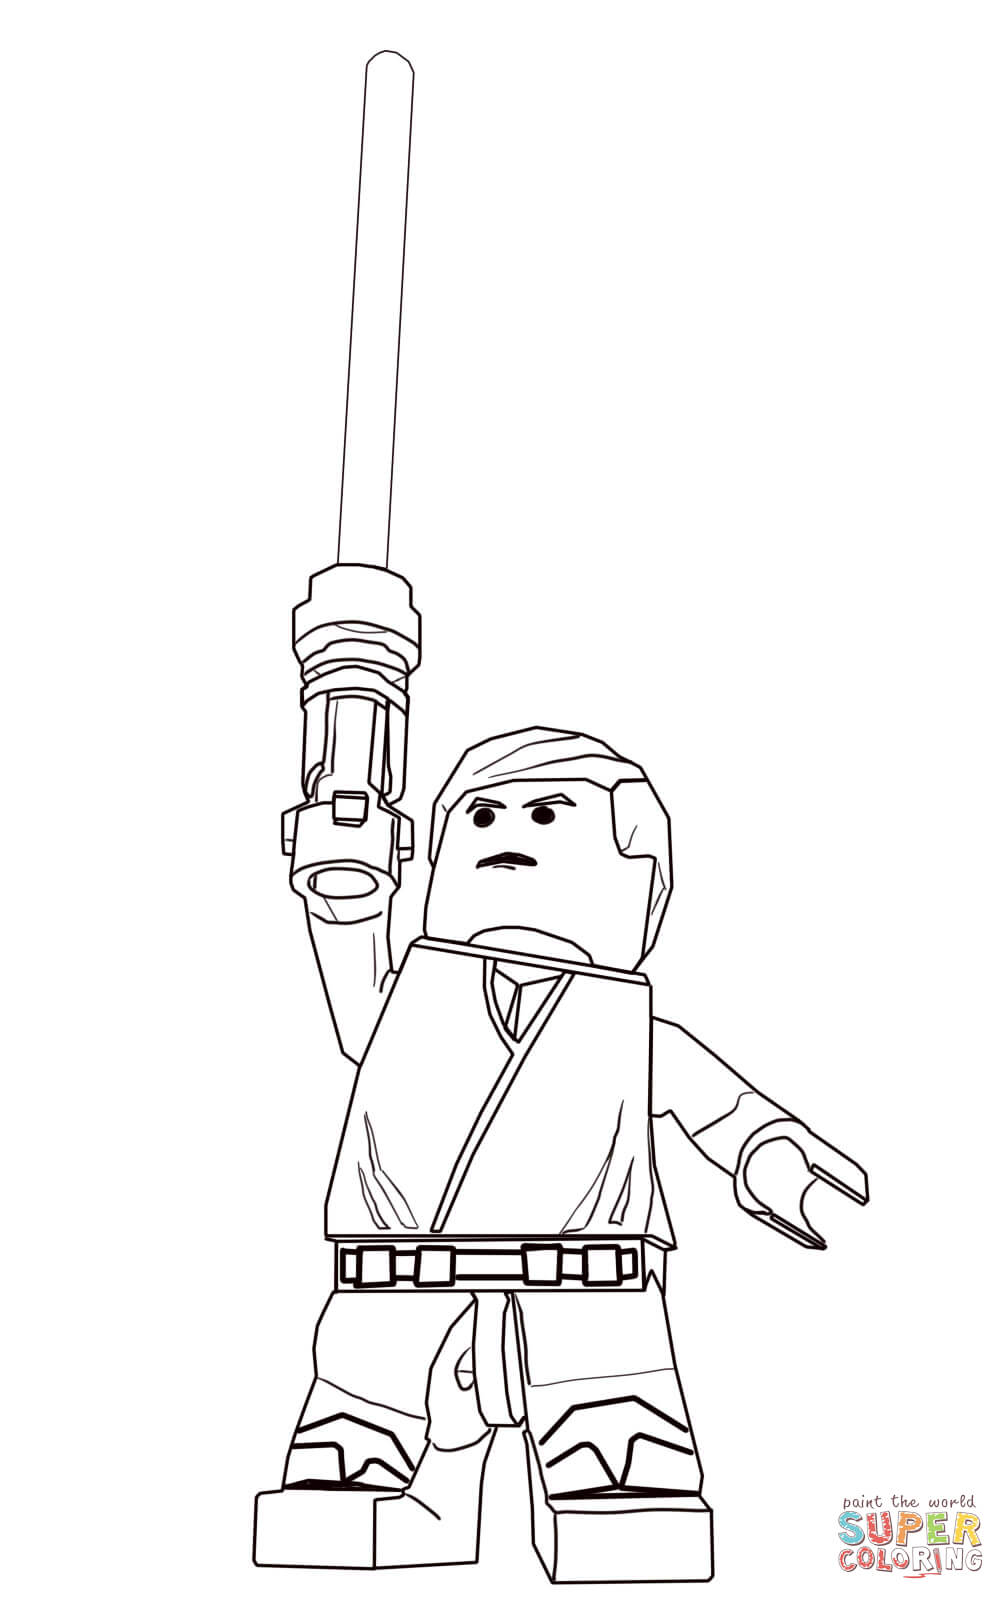 coloring pages luke 7 - photo#32